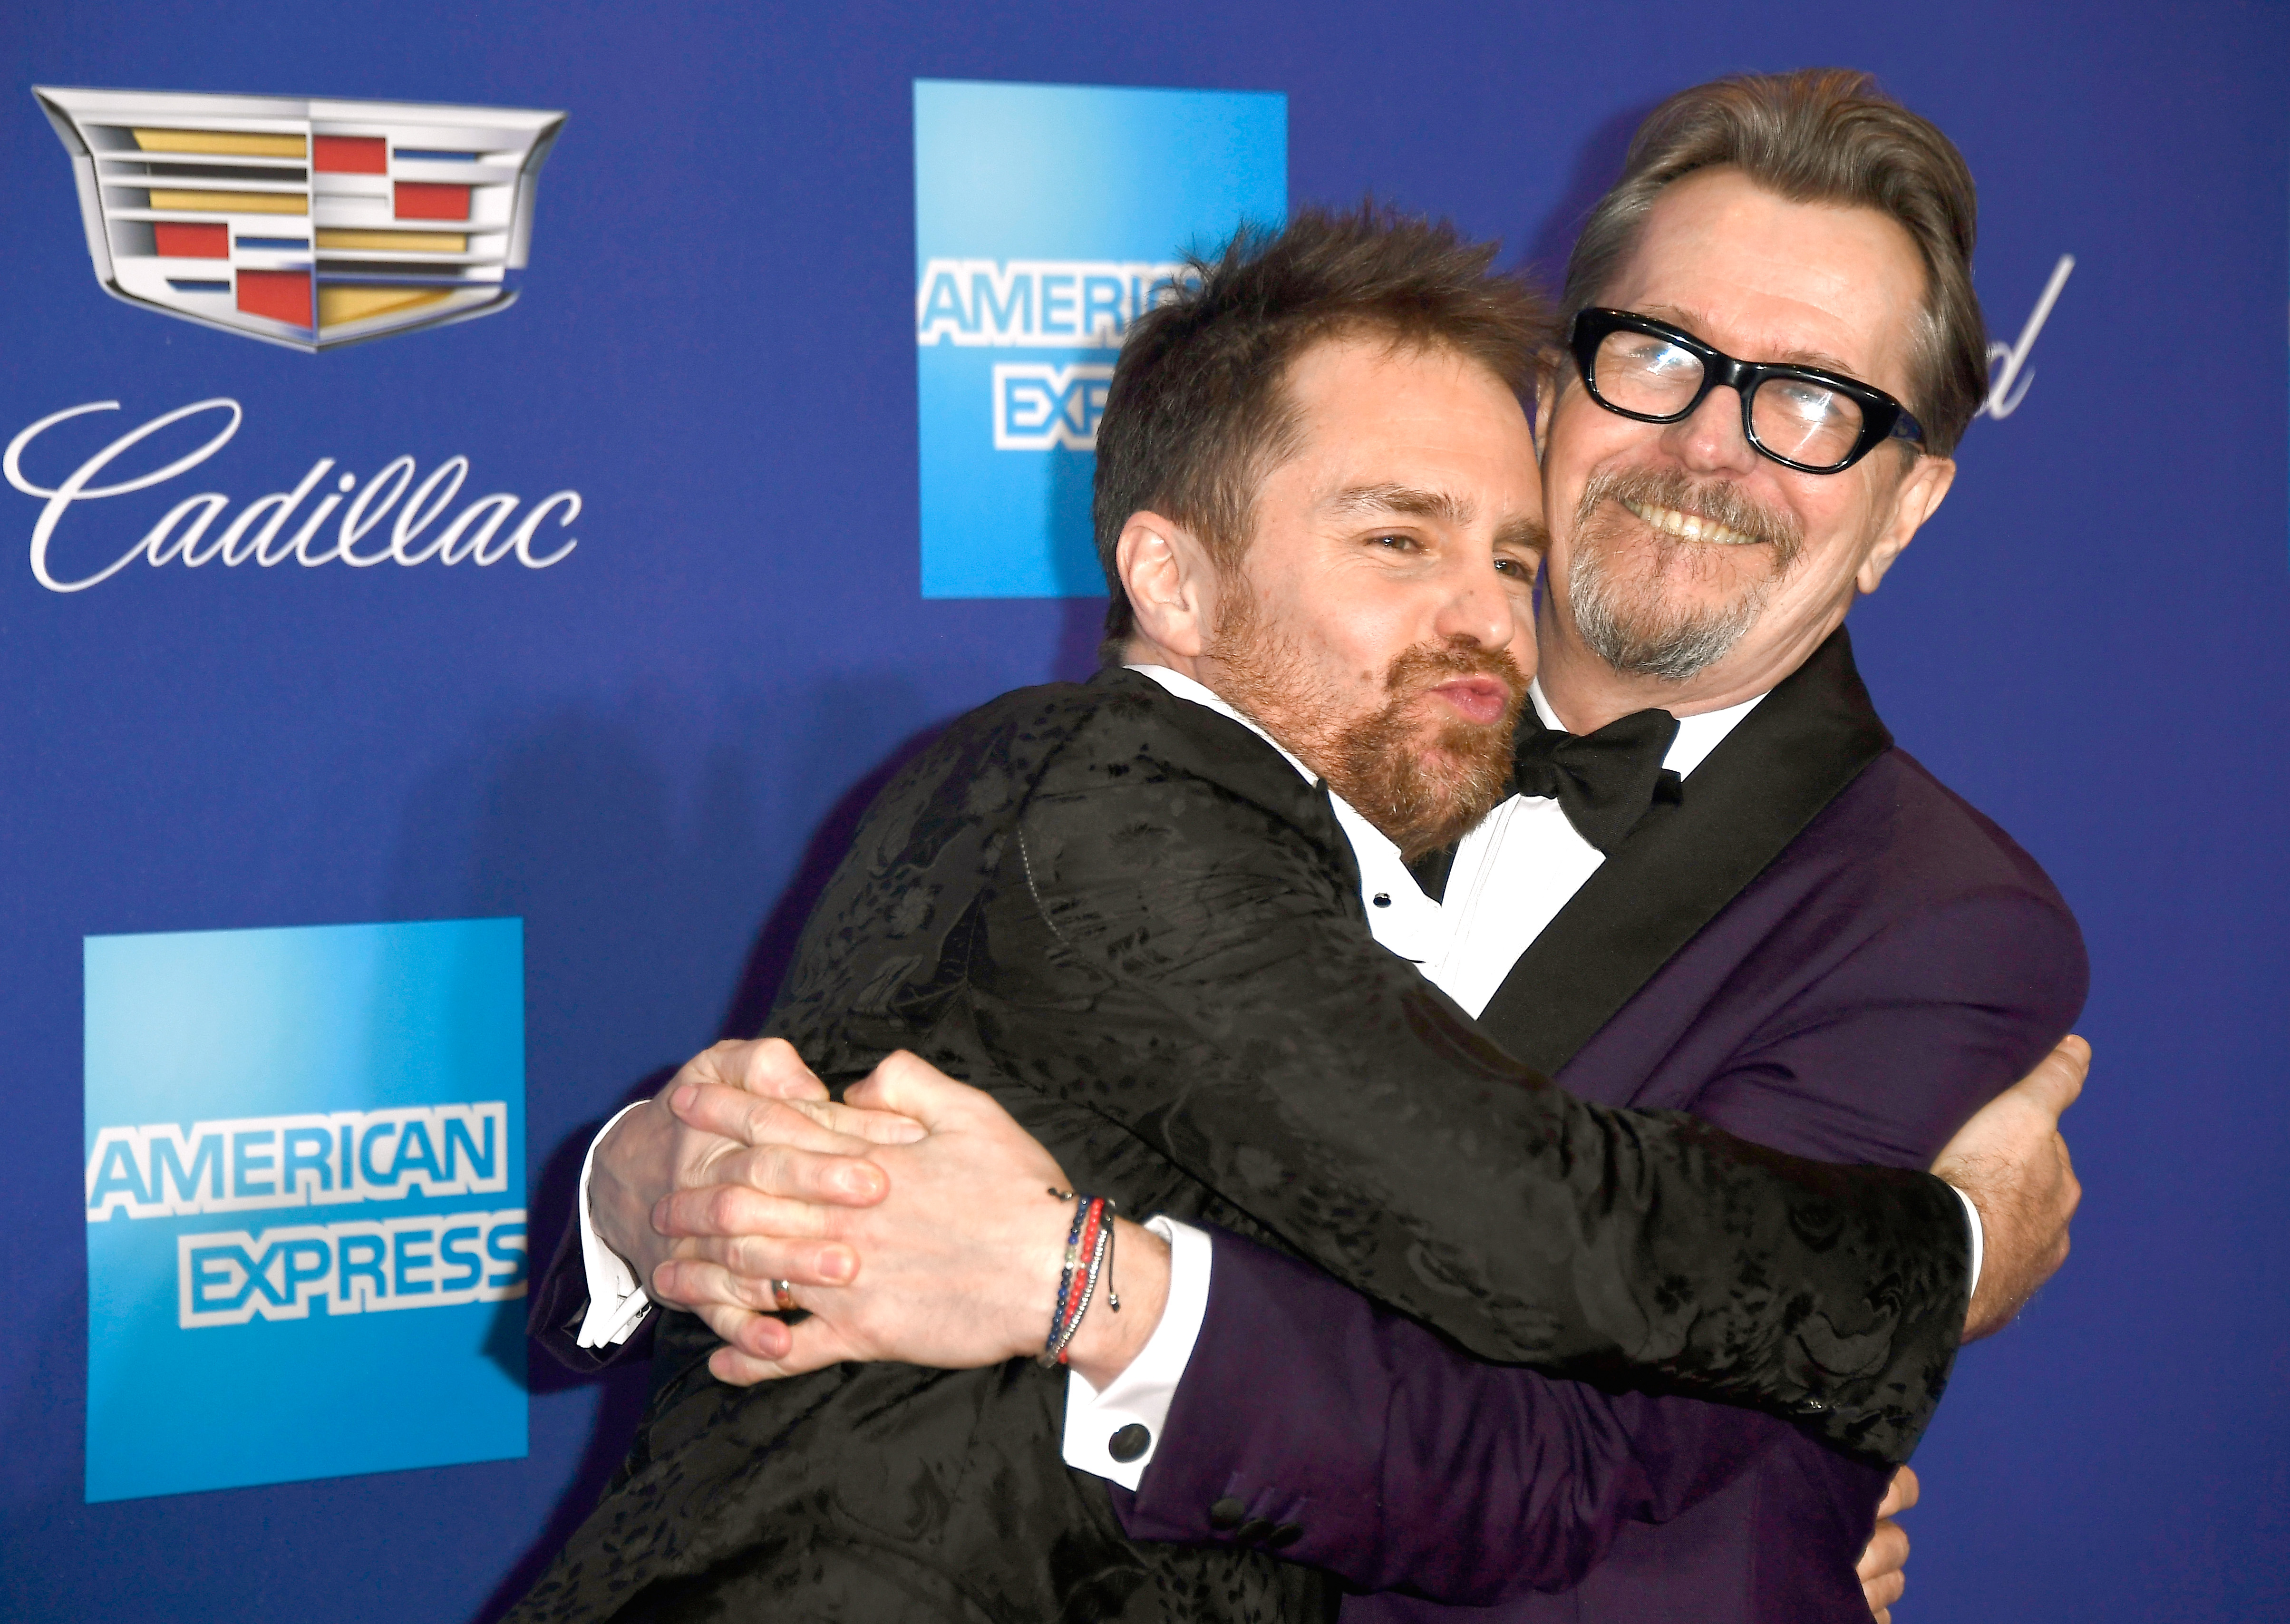 PALM SPRINGS, CA - JANUARY 02: Sam Rockwell (L) and Gary Oldman attend the 29th Annual Palm Springs International Film Festival Awards Gala at Palm Springs Convention Center on January 2, 2018 in Palm Springs, California. (Photo by Frazer Harrison/Getty Images for Palm Springs International Film Festival ) *** Local Caption *** Sam Rockwell;Gary Oldman